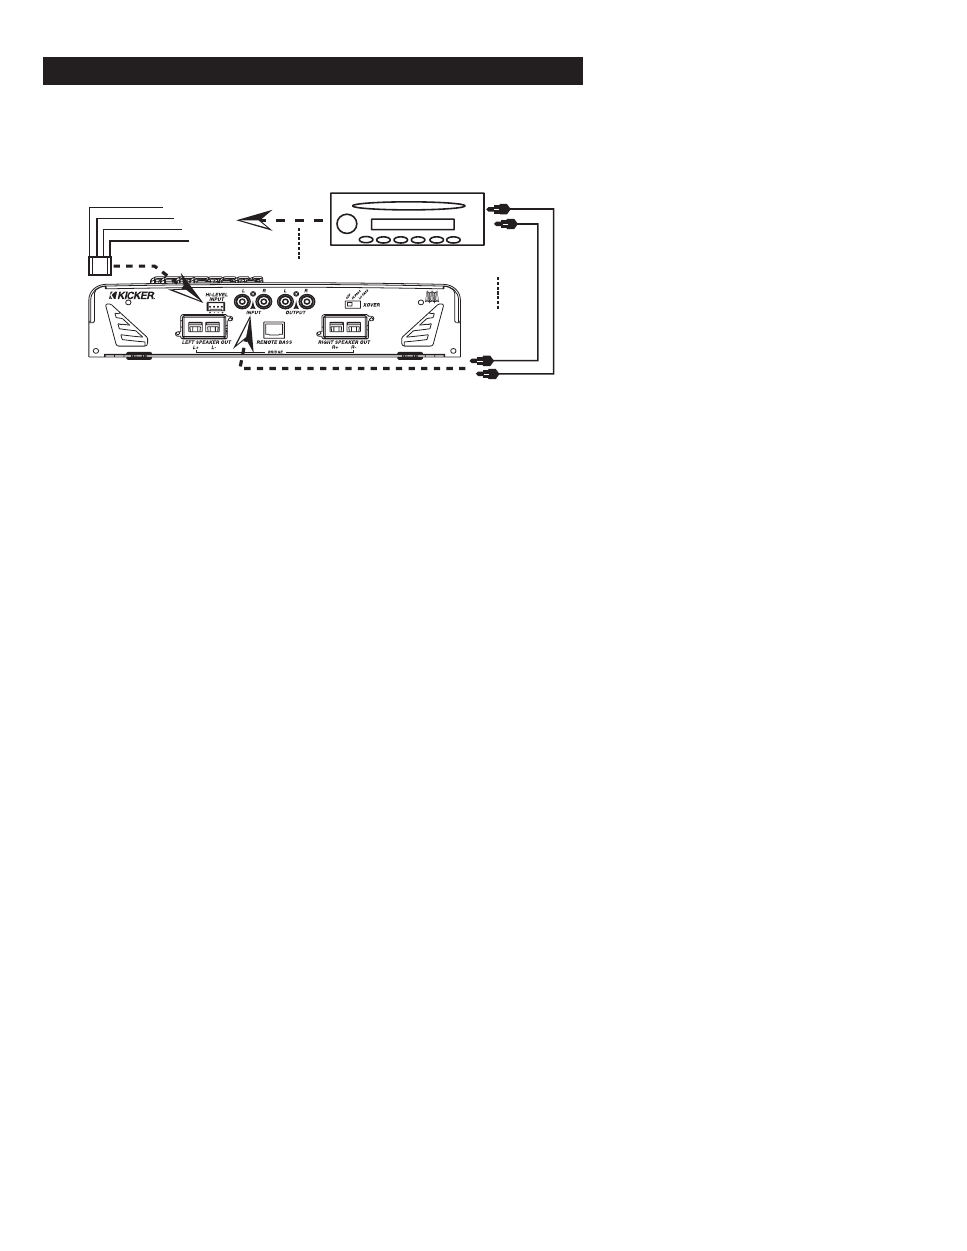 Kicker Zx460 Amp Wiring Schematics Schematic Diagrams Speaker Diagram Kx800 2 Owners Manual Page 3 Free Pdf Download 12 Pages